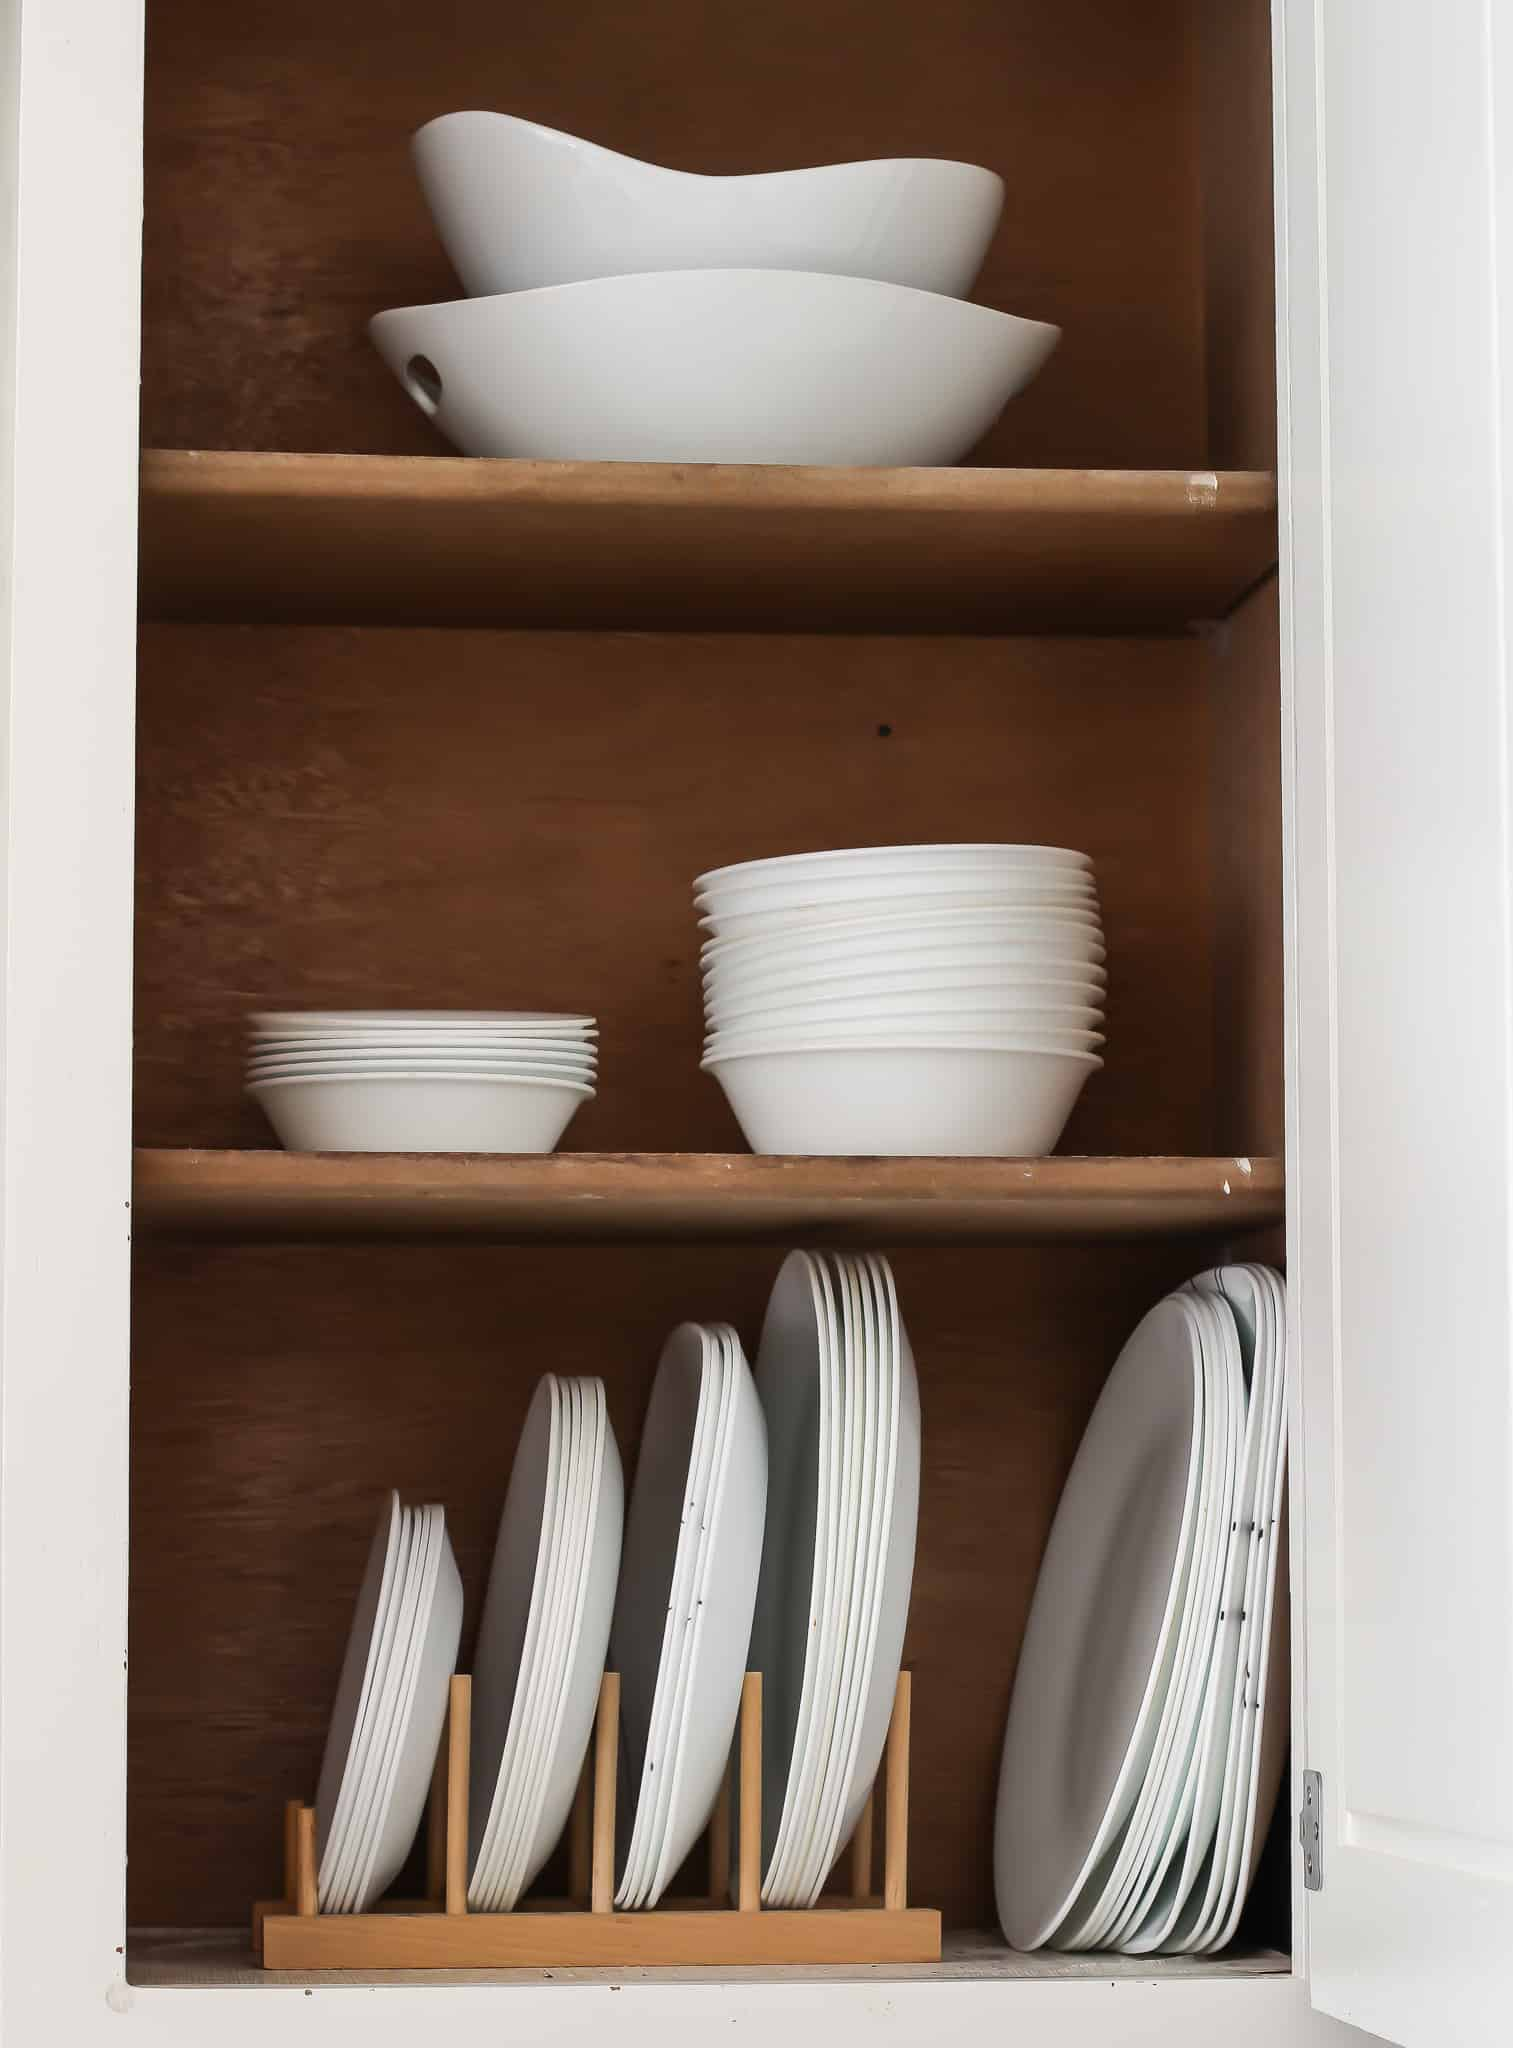 Make dishes easy accessible for kitchen organization.